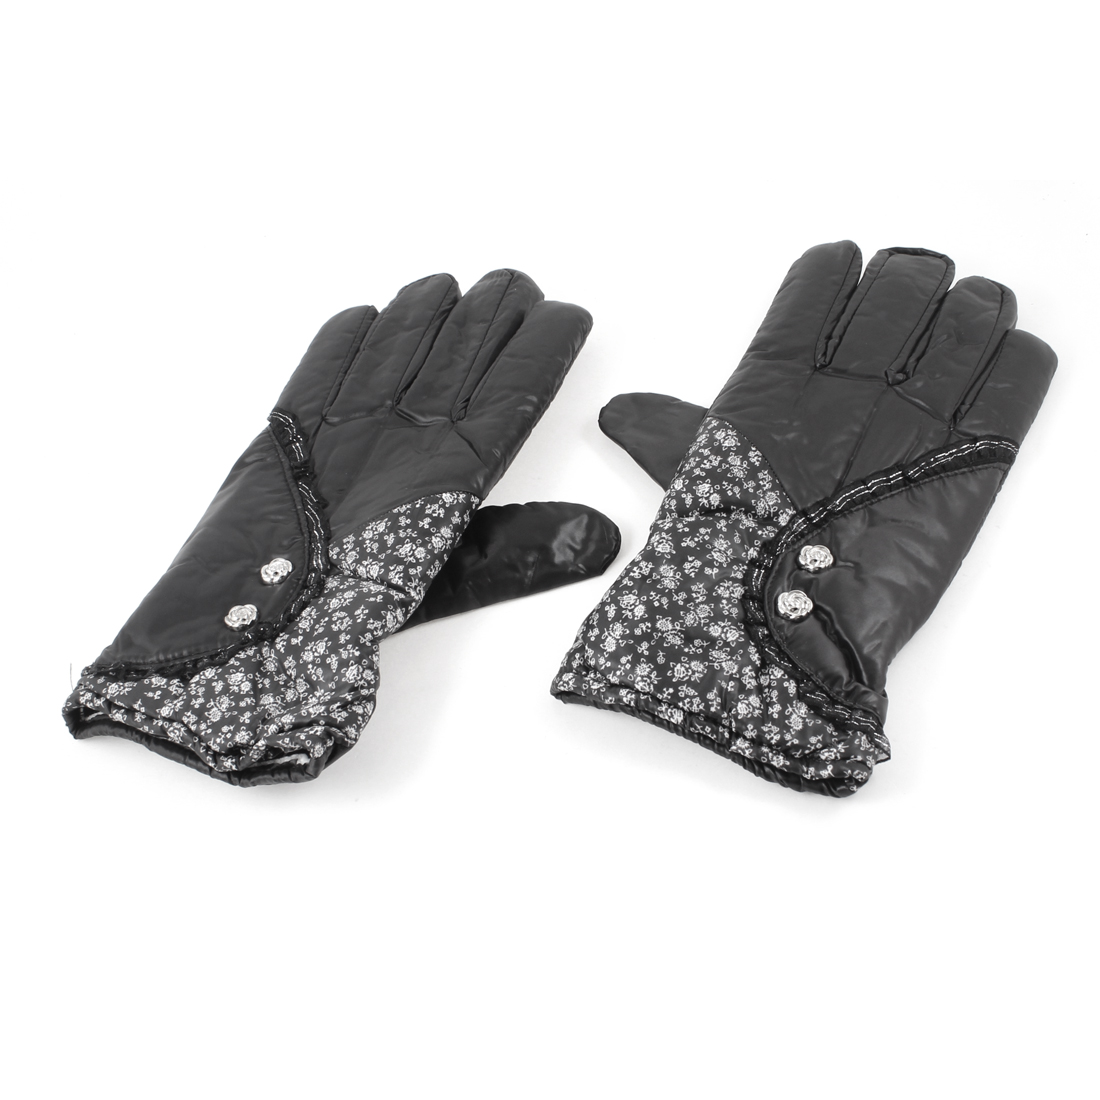 Cycling Windproof Fleece Lining Full Finger Warm Gloves Black Pair for Ladies